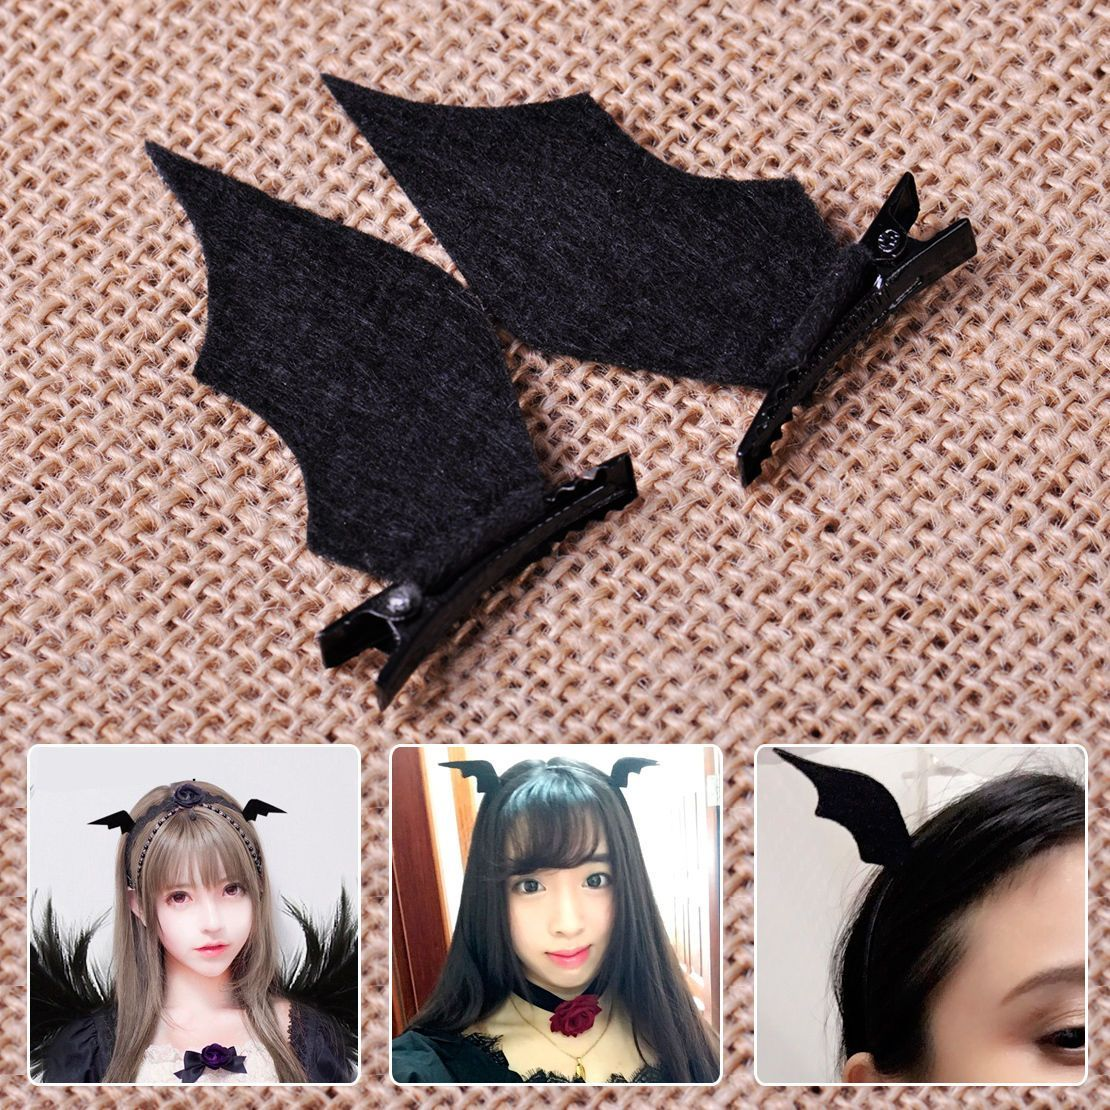 Devil Wings Bat Wings Hair Clip Cosplay Halloween Dress-Up Costume Accessory  sc 1 st  Pinterest & Devil Wings Bat Wings Hair Clip Cosplay Halloween Dress-up Costume ...